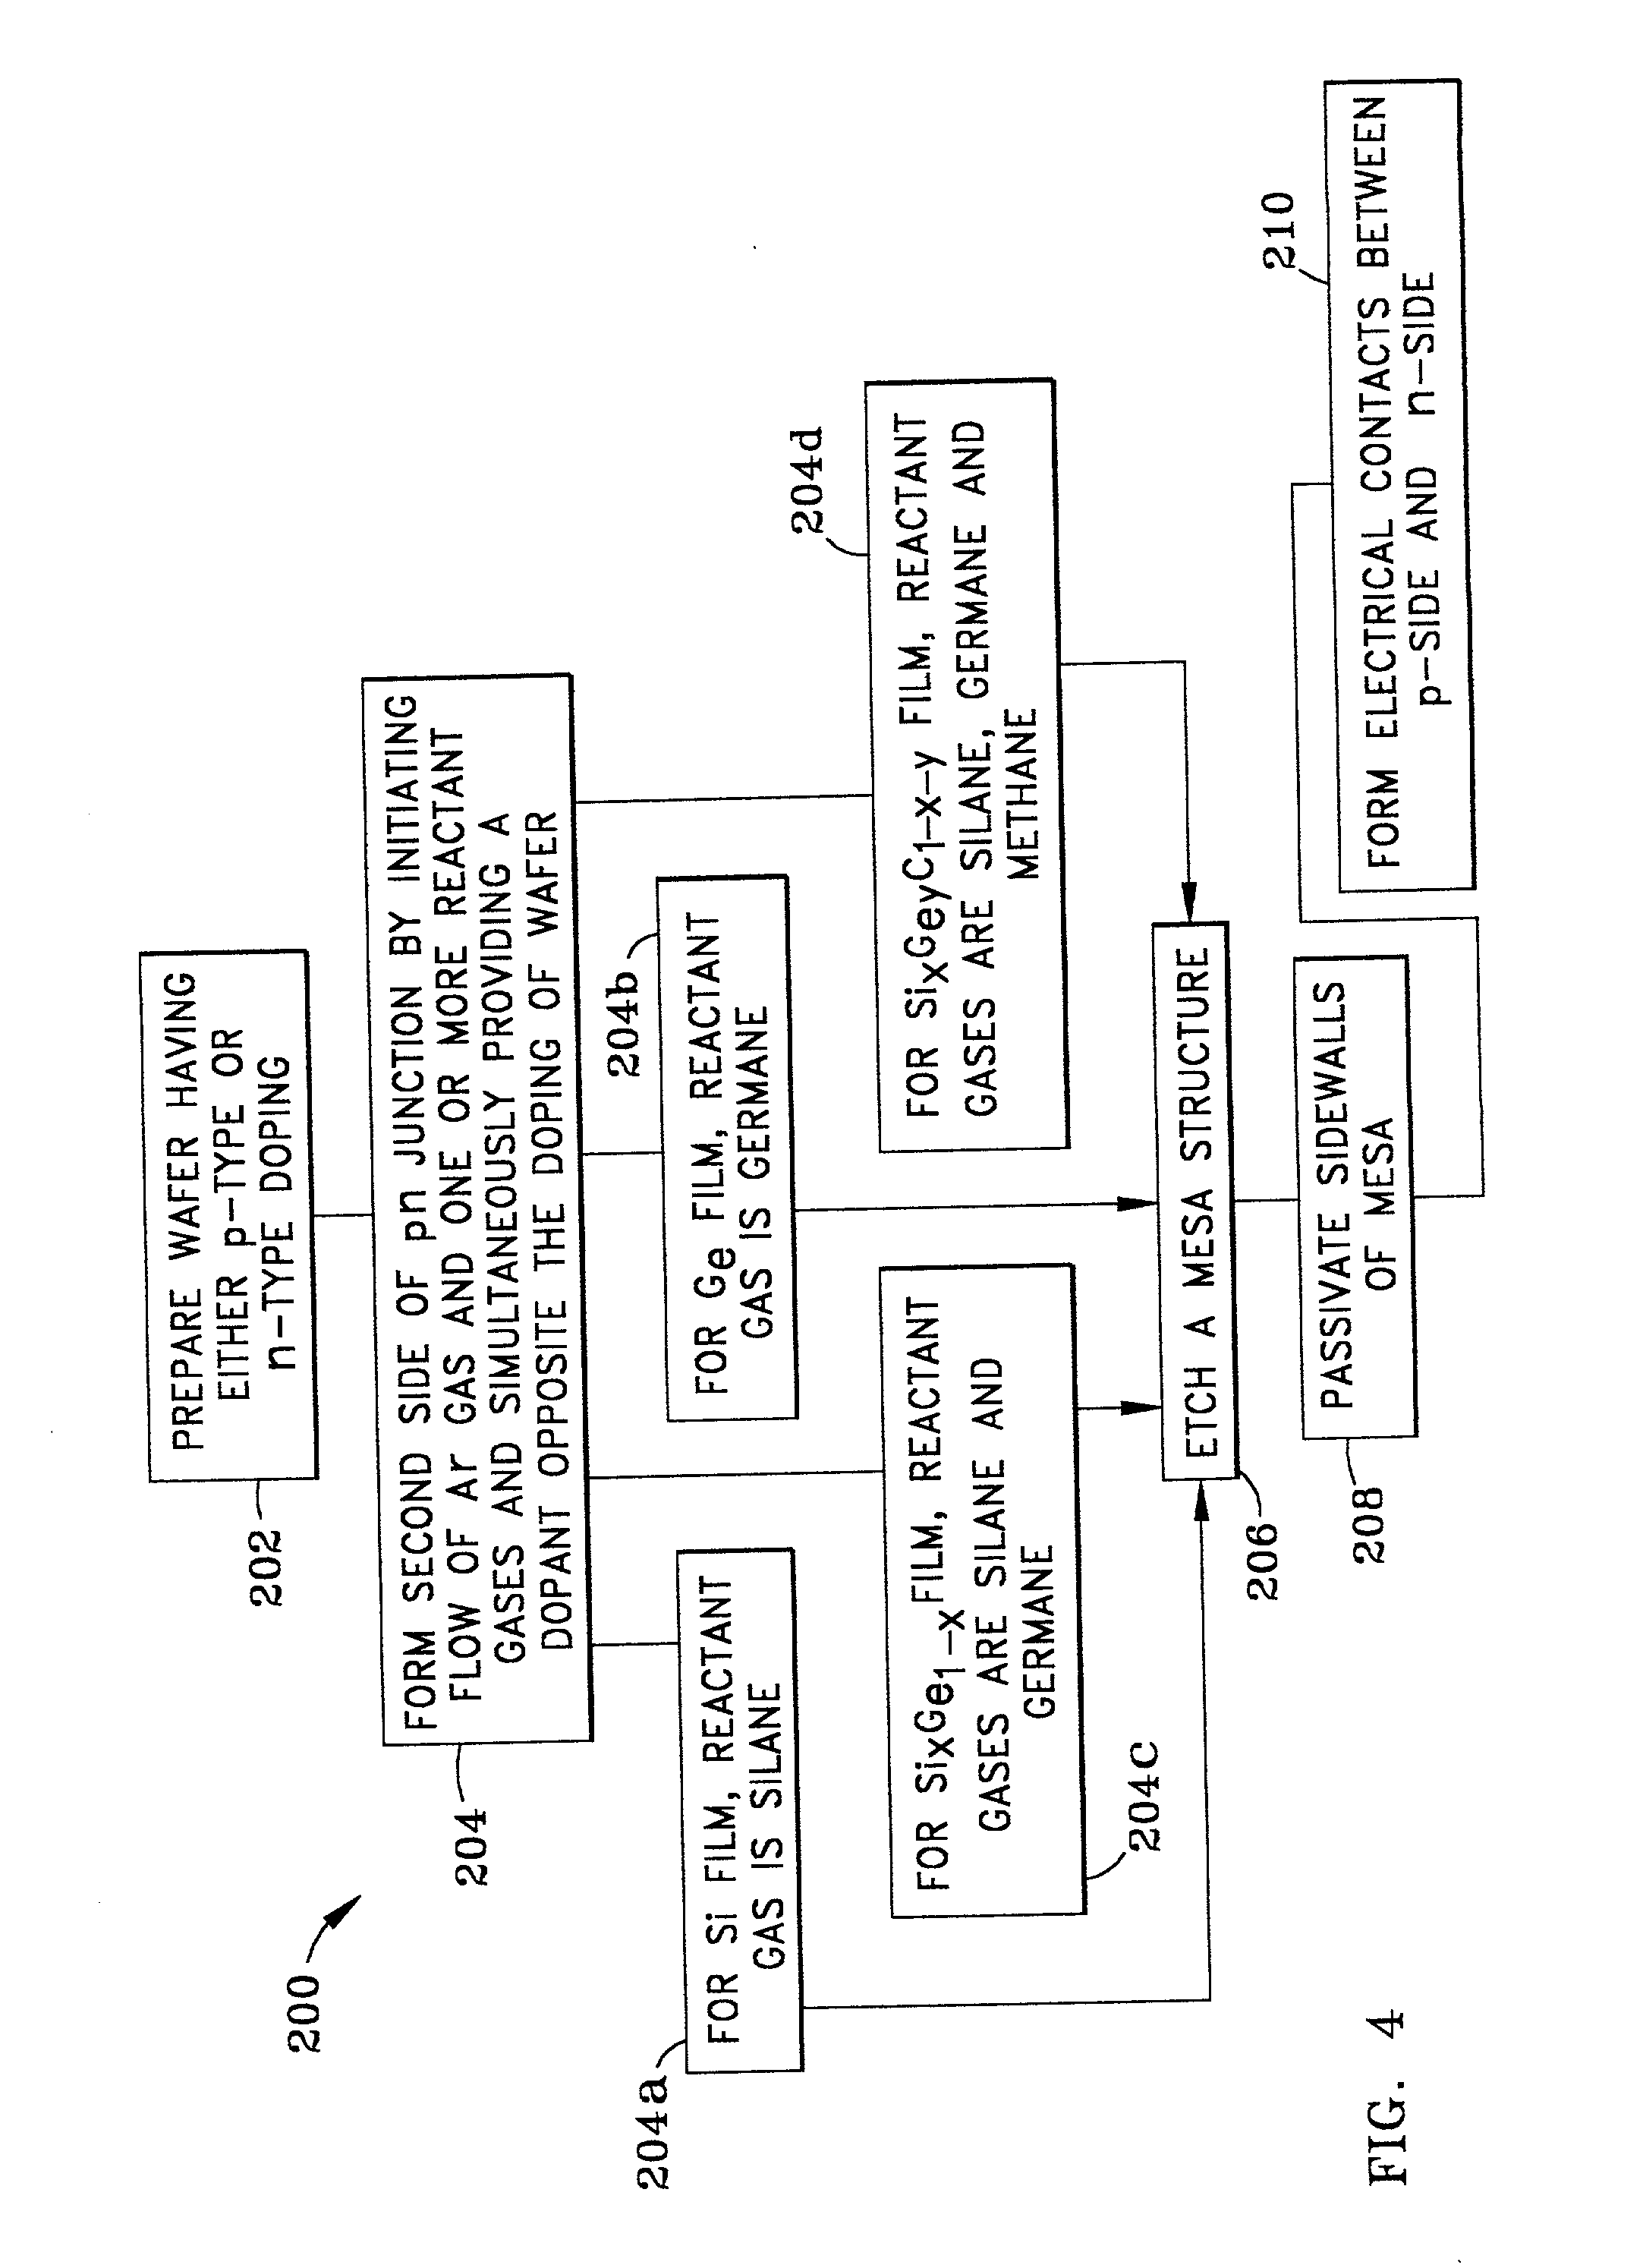 Brevet Us20020088972 Abrupt Pn Junction Diode Formed Using And Its Characteristics Patent Drawing